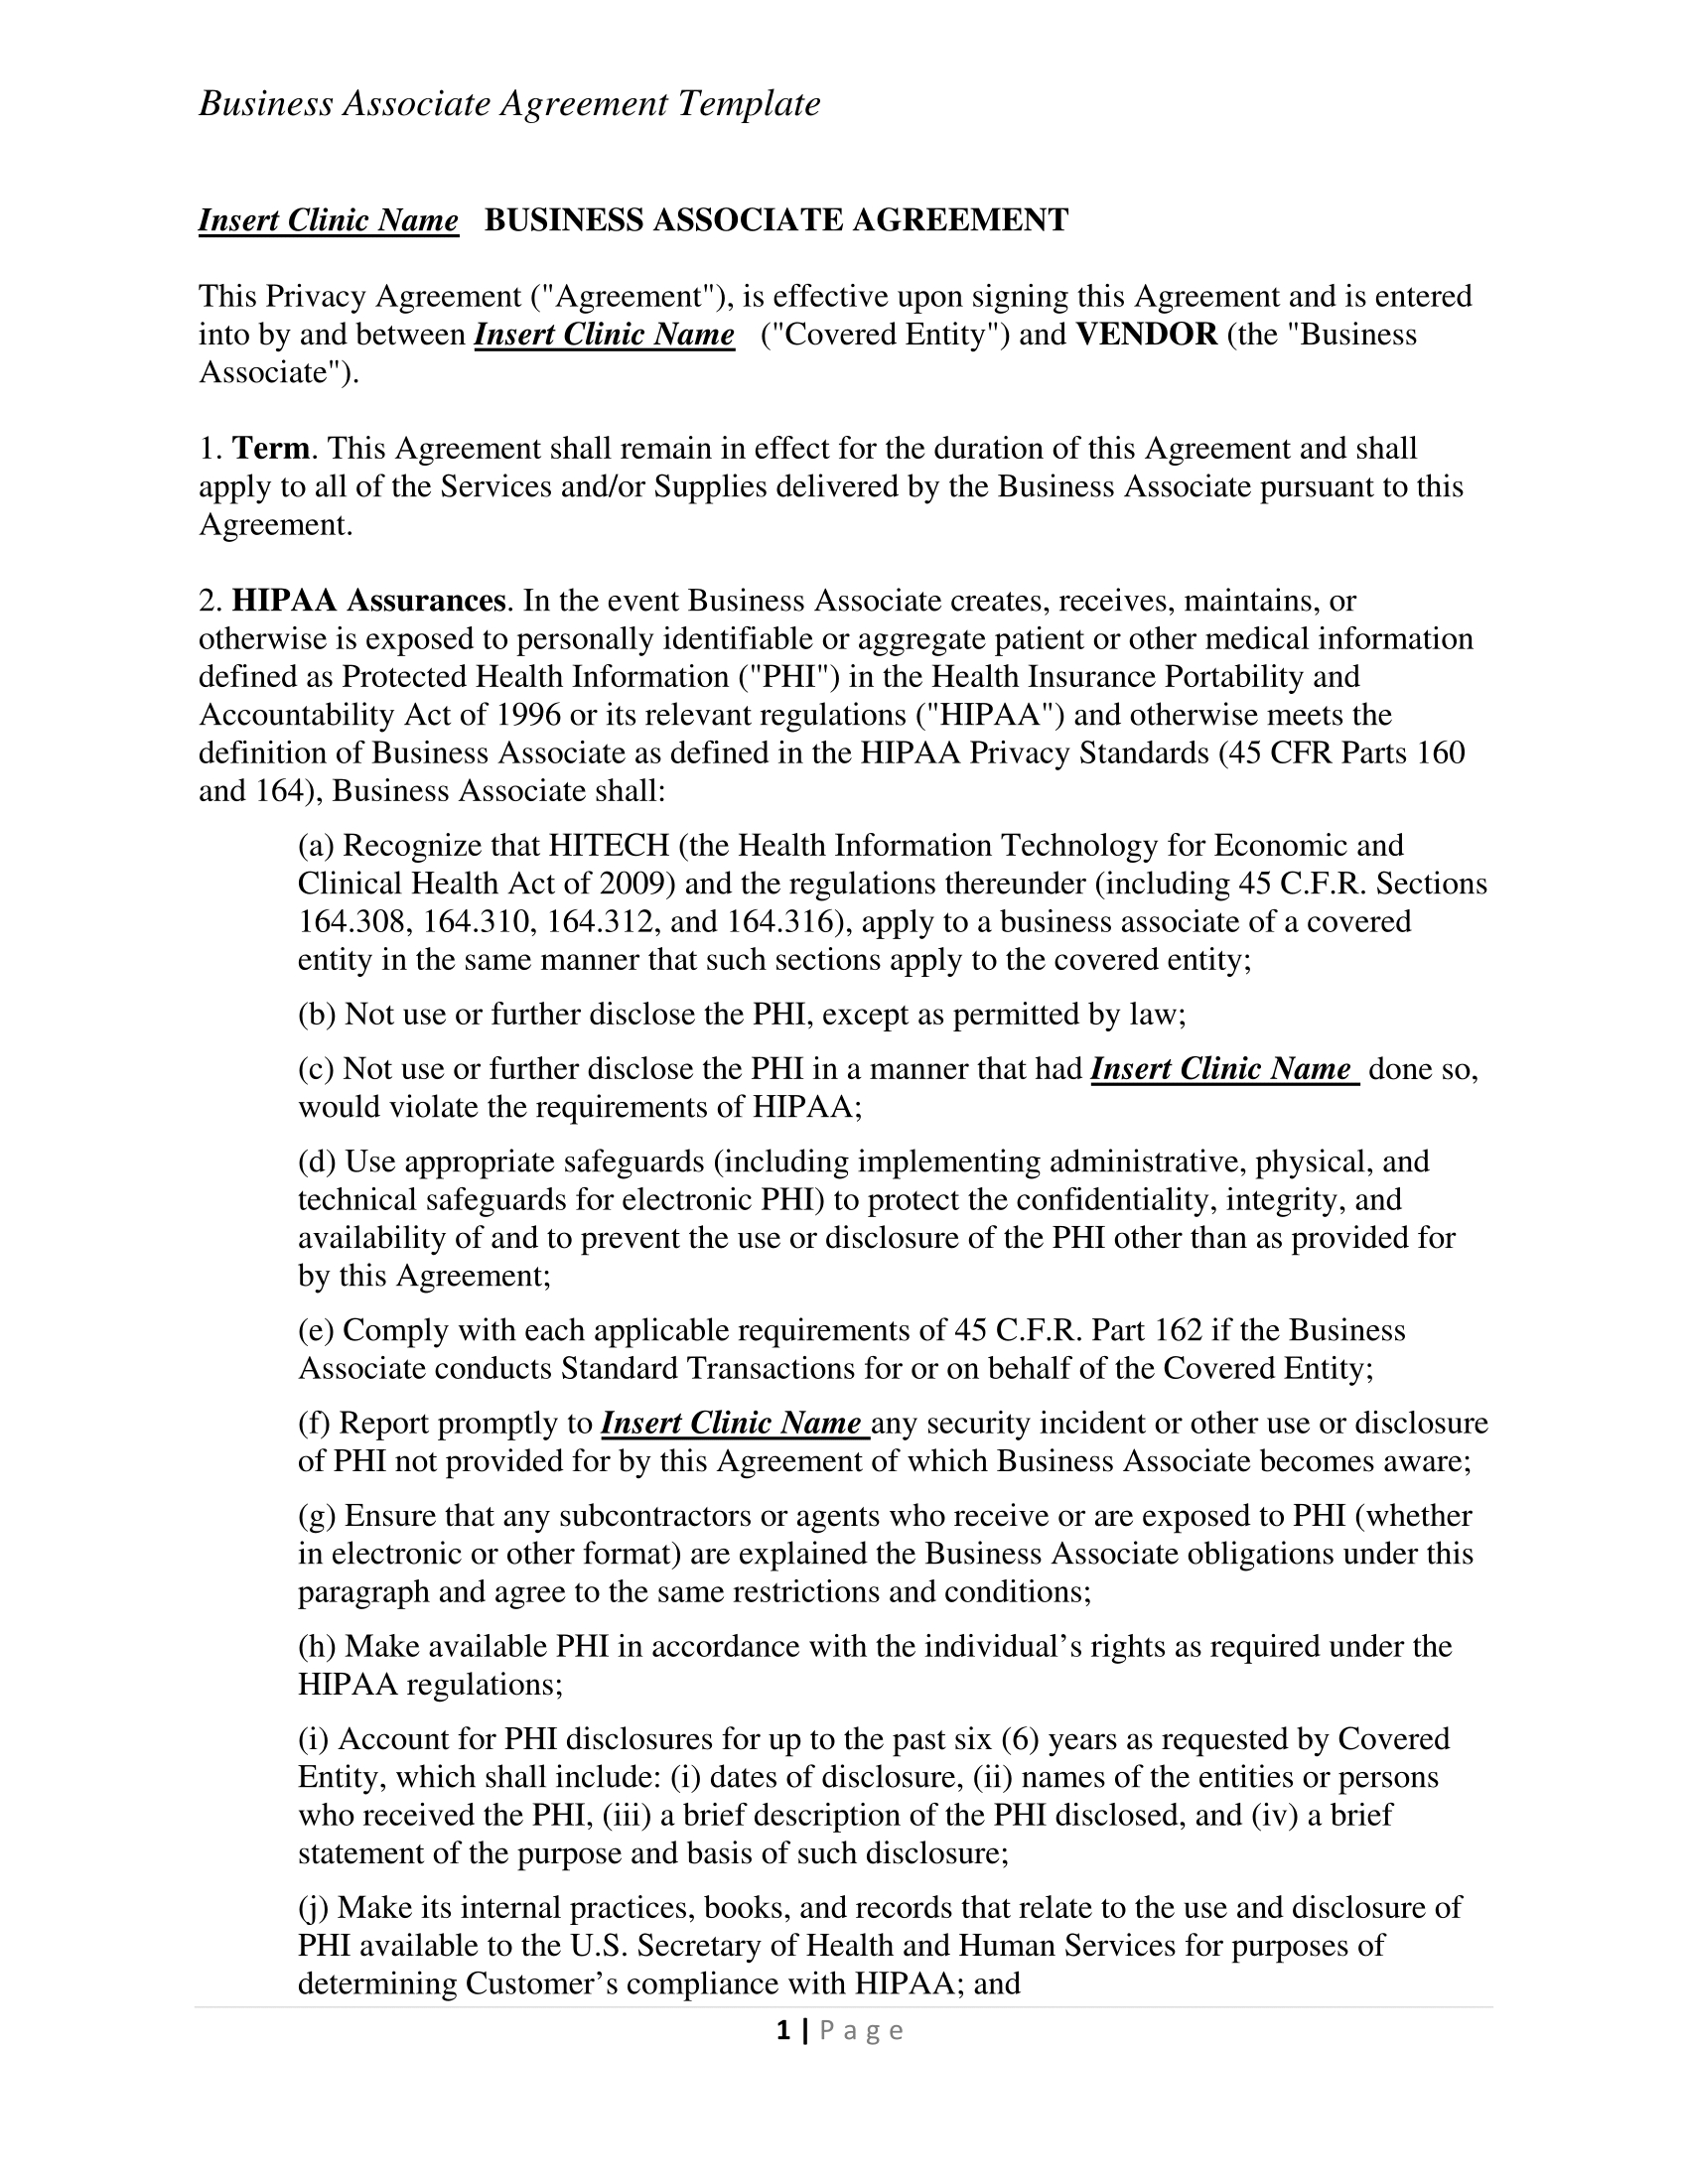 Business Contract Agreement 31 Contract Examples Samples Examples